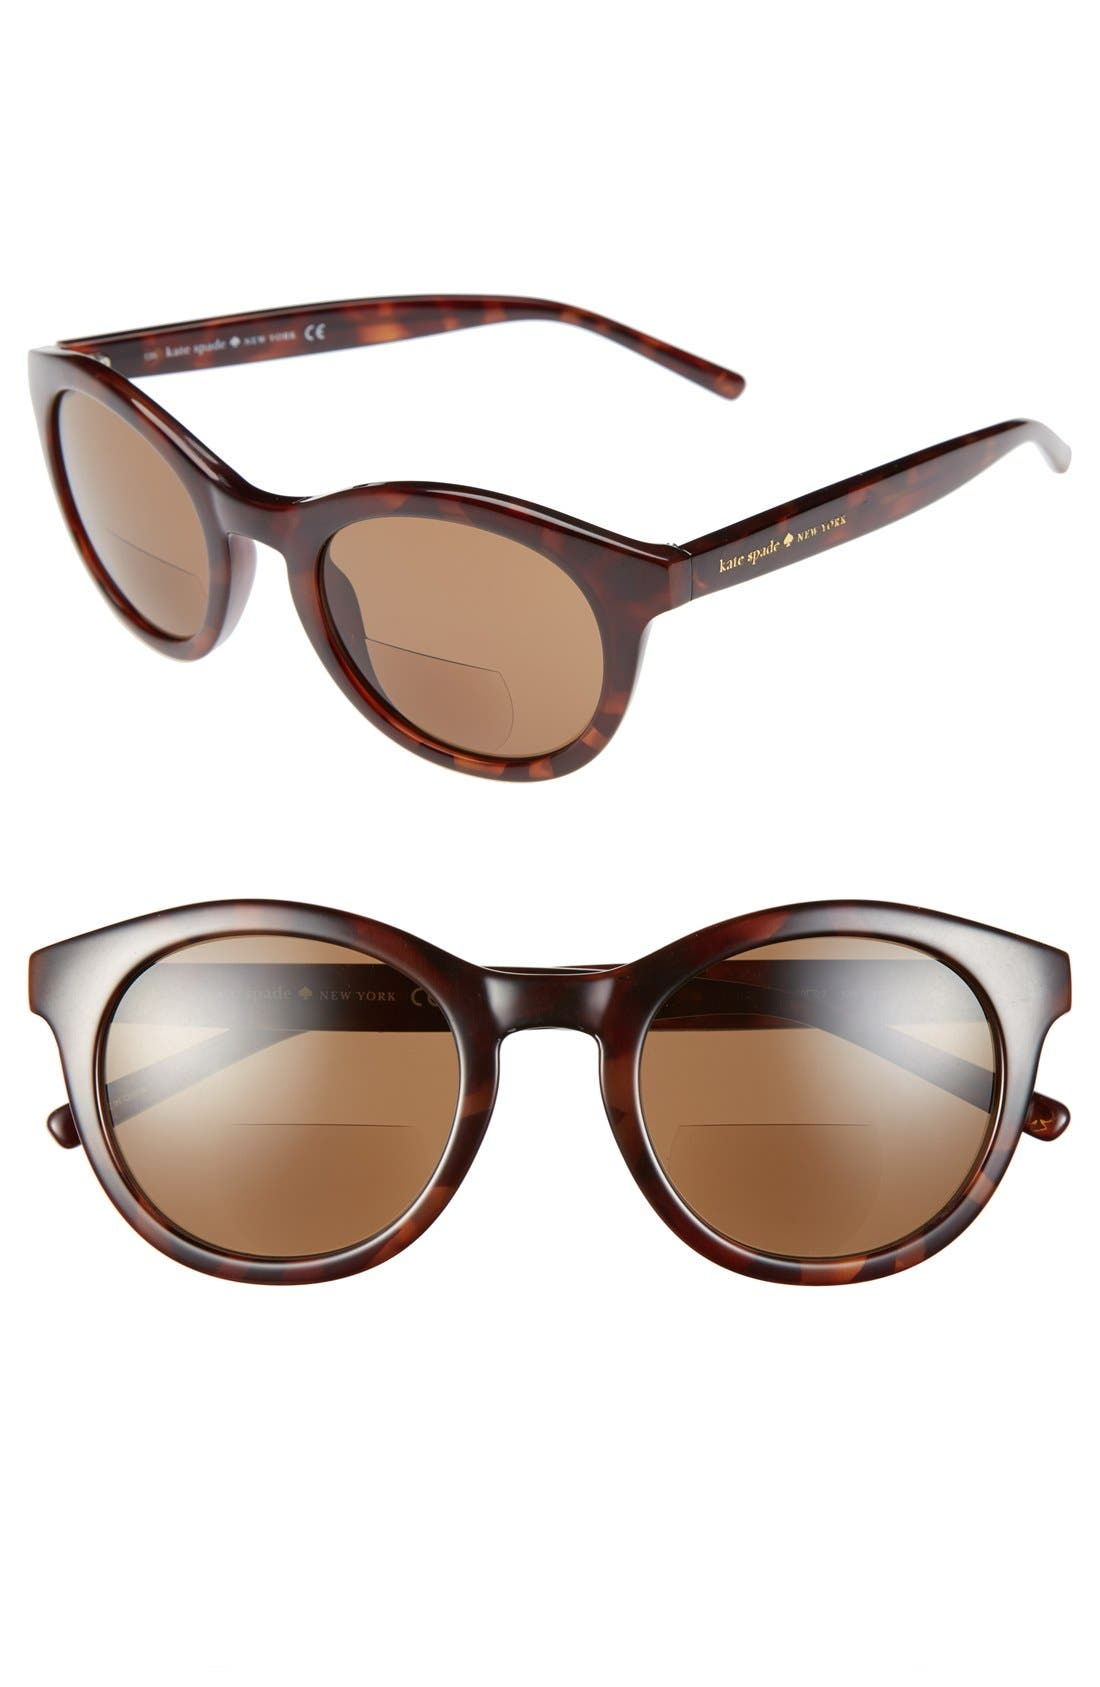 Alternate Image 1 Selected - kate spade new york 'sunreader' 36mm reading sunglasses (2 for $88)